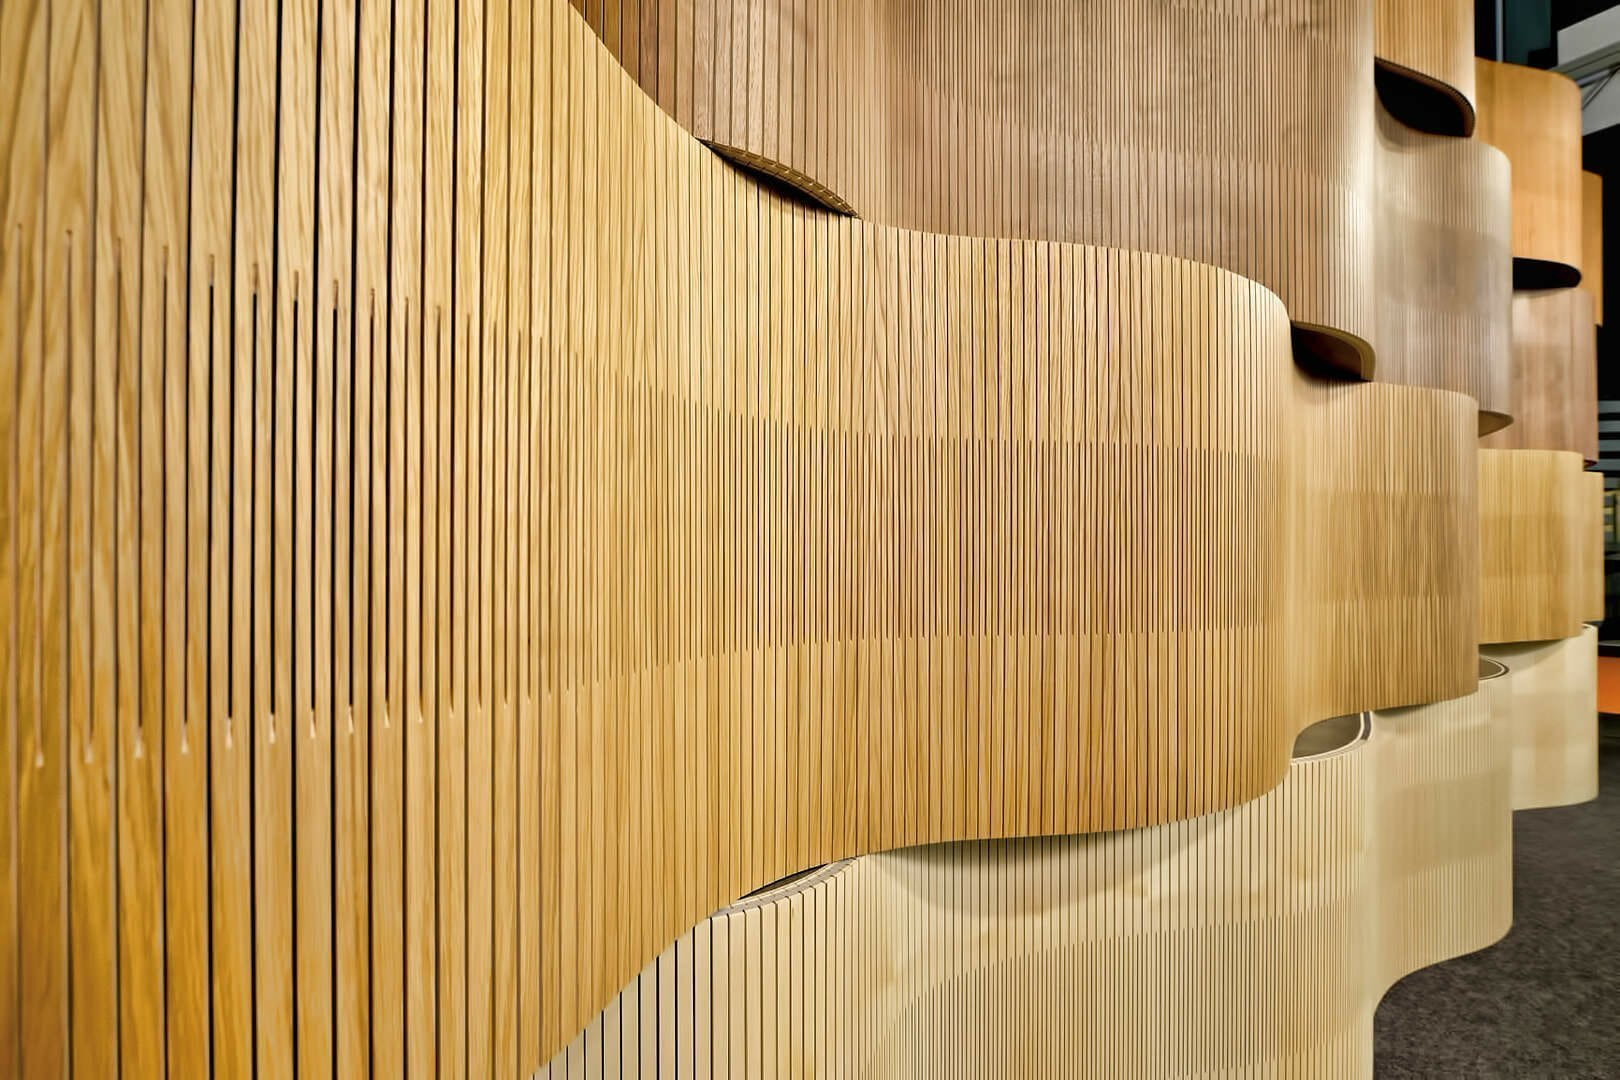 acoustic wood displaying like fish swimming in showroom